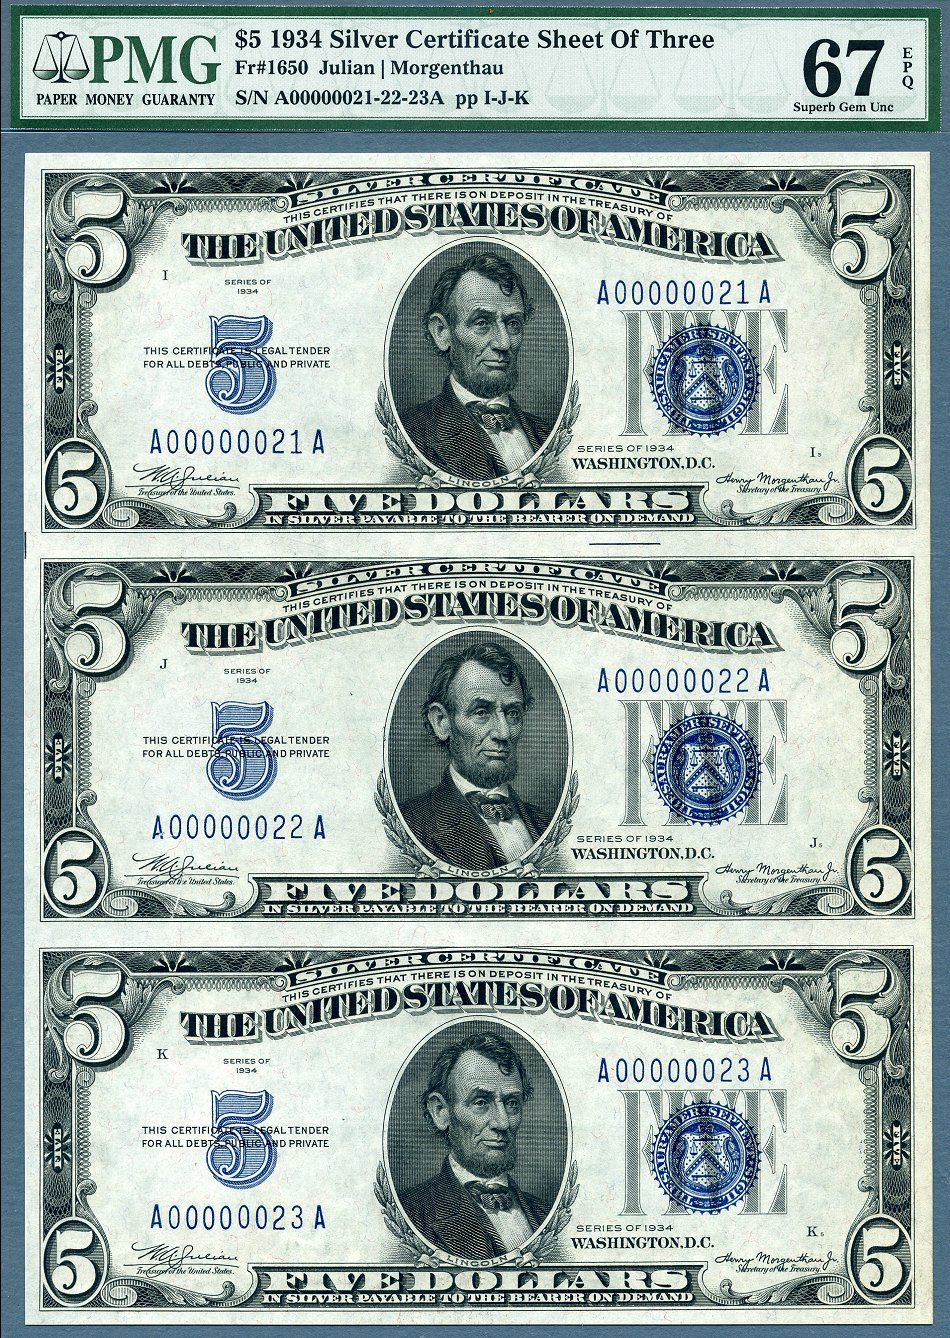 1934 5 Silver Certificates 3 Note Uncut Sheet Low Pmg Superb Gem